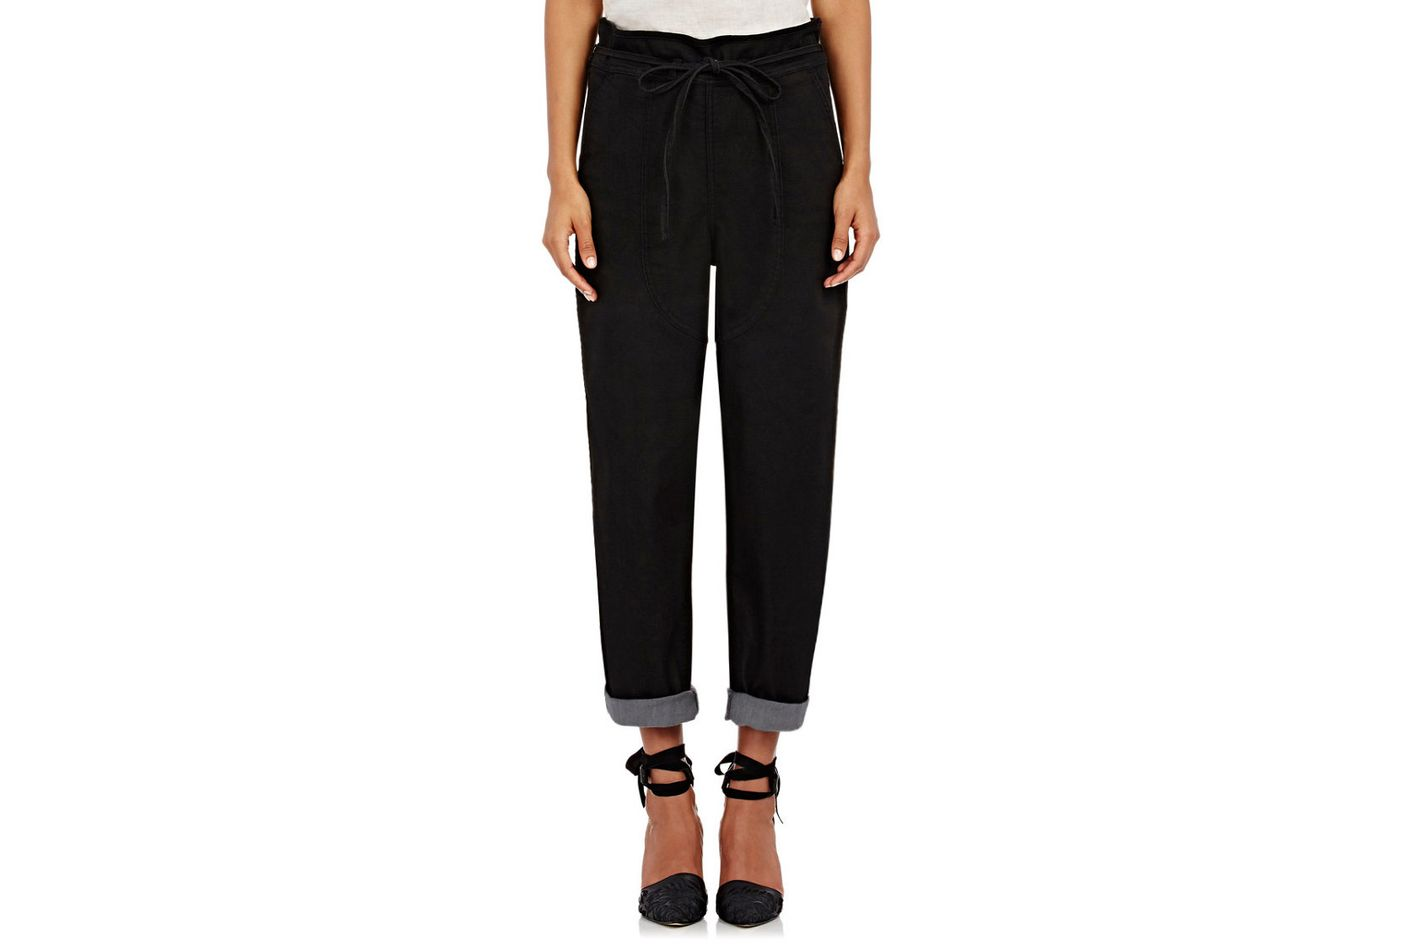 Ulla Johnson Sabi Tie-Waist Pants